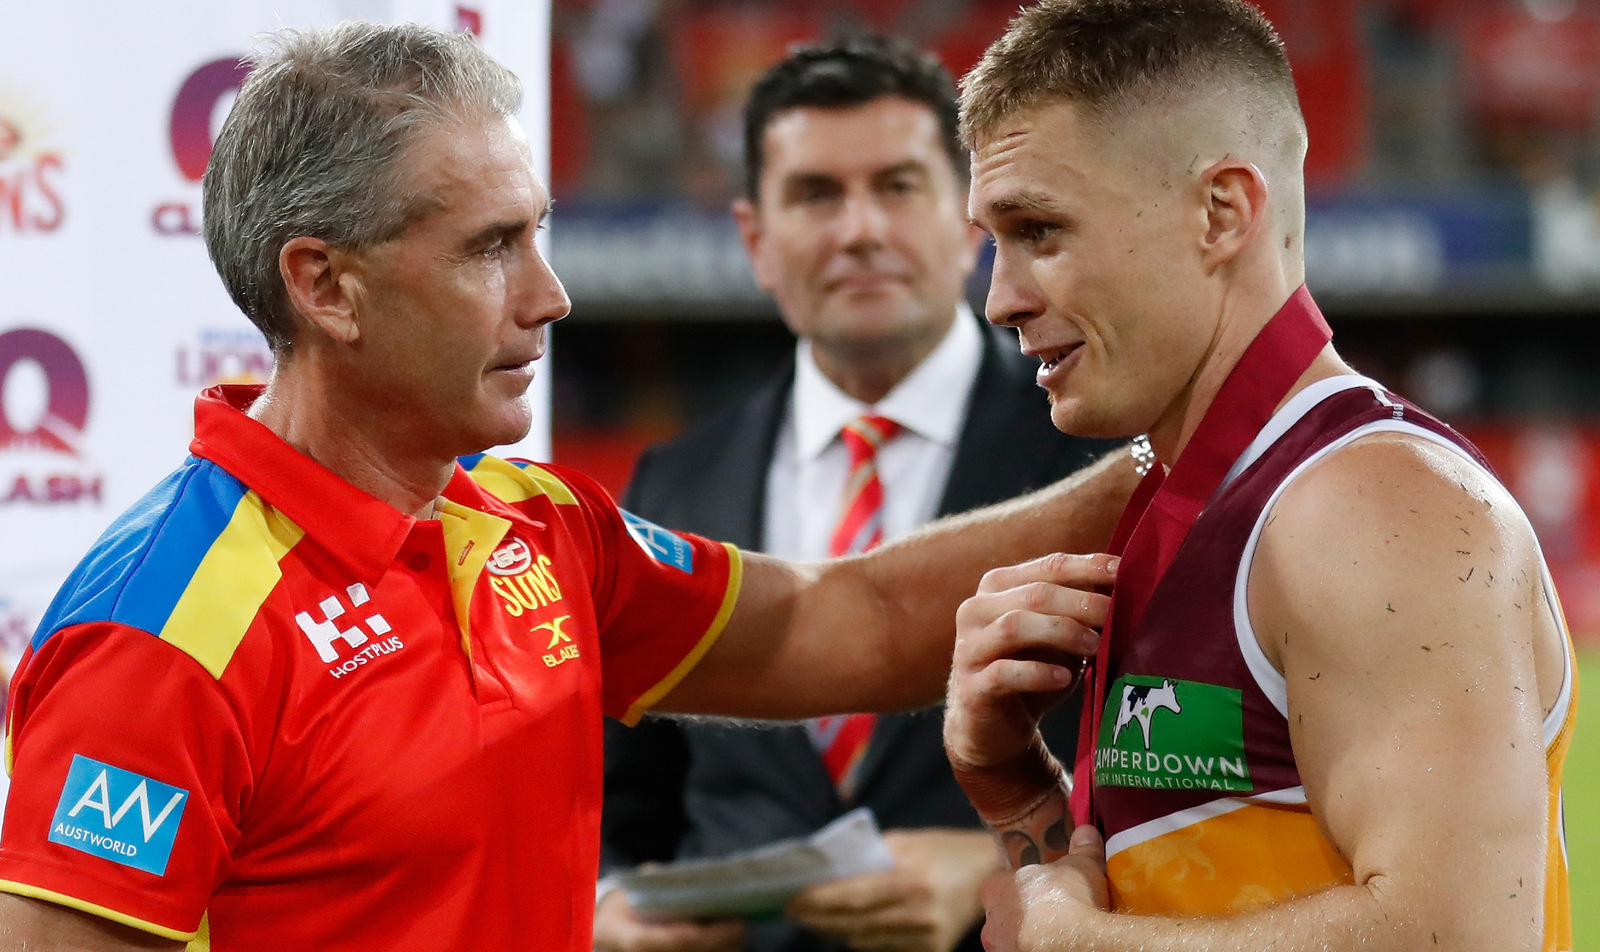 GOLD COAST, AUSTRALIA - MARCH 25: Marcus Ashcroft presents Dayne Beams of the Lions with the Marcus Ashcroft Medal during the 2017 AFL round 01 match between the Gold Coast Suns and the Brisbane Lions at Metricon Stadium on March 25, 2017 in Gold Coast, Australia. (Photo by Michael Willson/AFL Media)